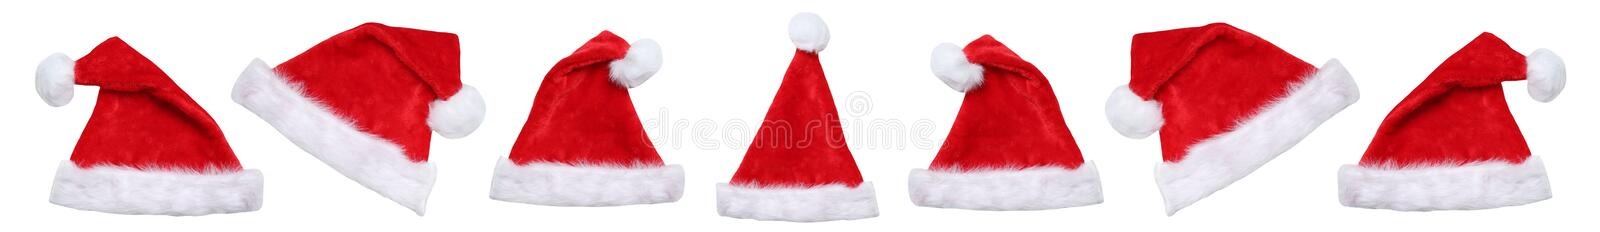 Santa Claus hat hats on Christmas winter isolated royalty free stock photography